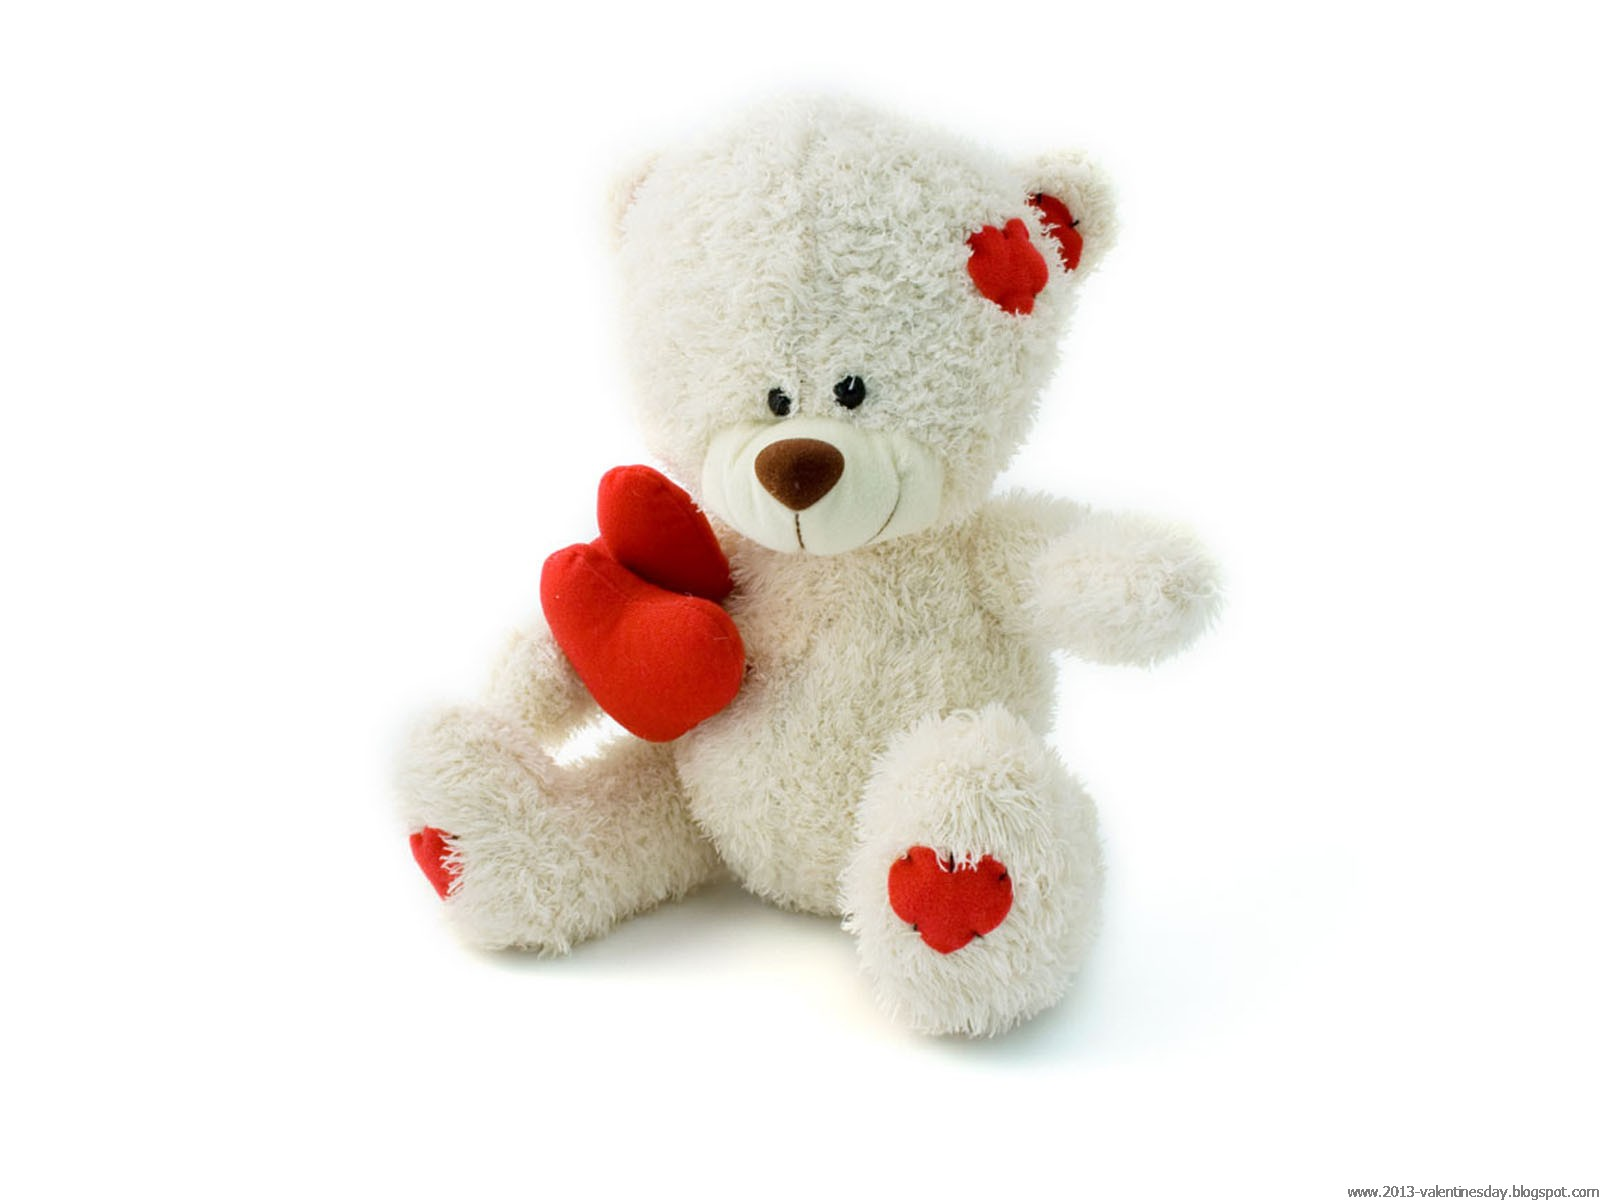 Happy teddy day images pics wallpapers 100 dontgetserious teddy day images download for free altavistaventures Image collections